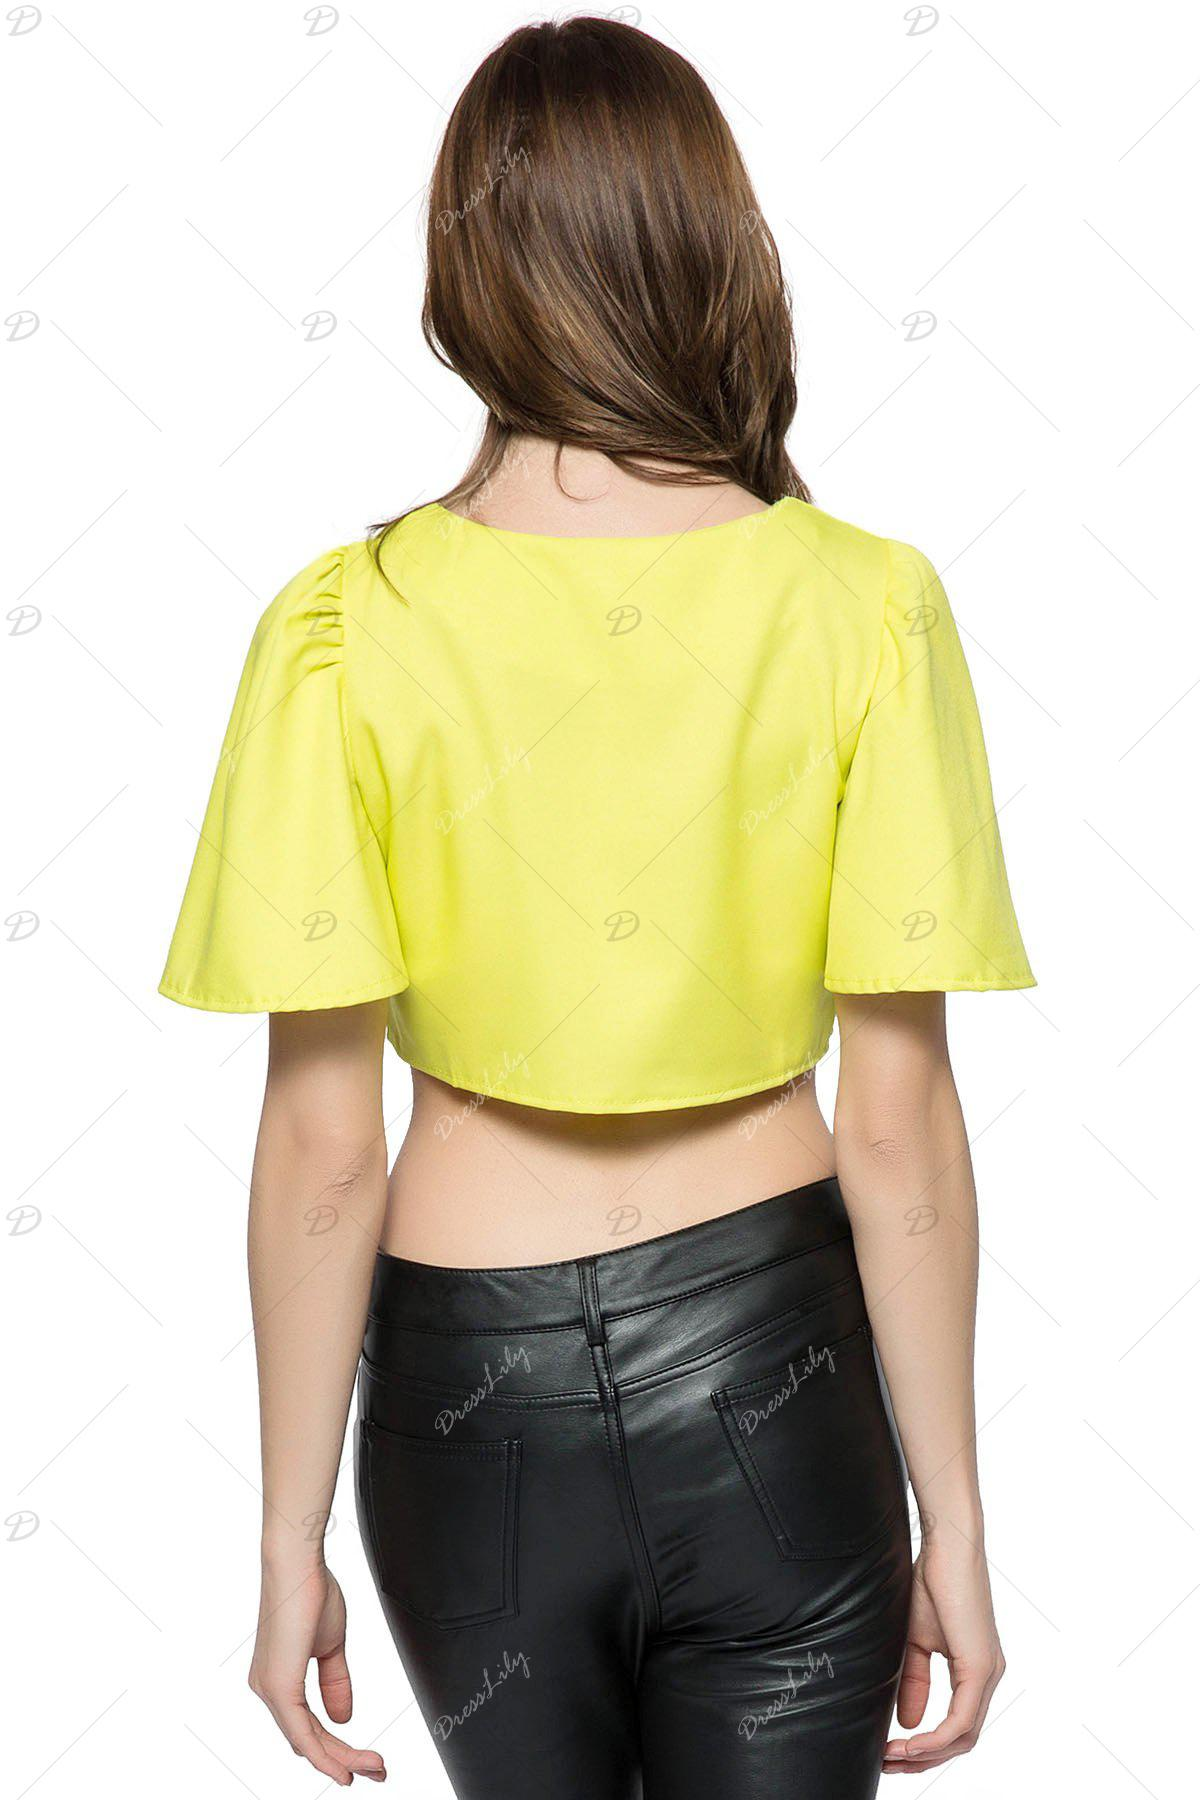 Women's Charming Ruffled Solid Color Flare Sleeve Round Collar Crop Top - YELLOW ONE SIZE